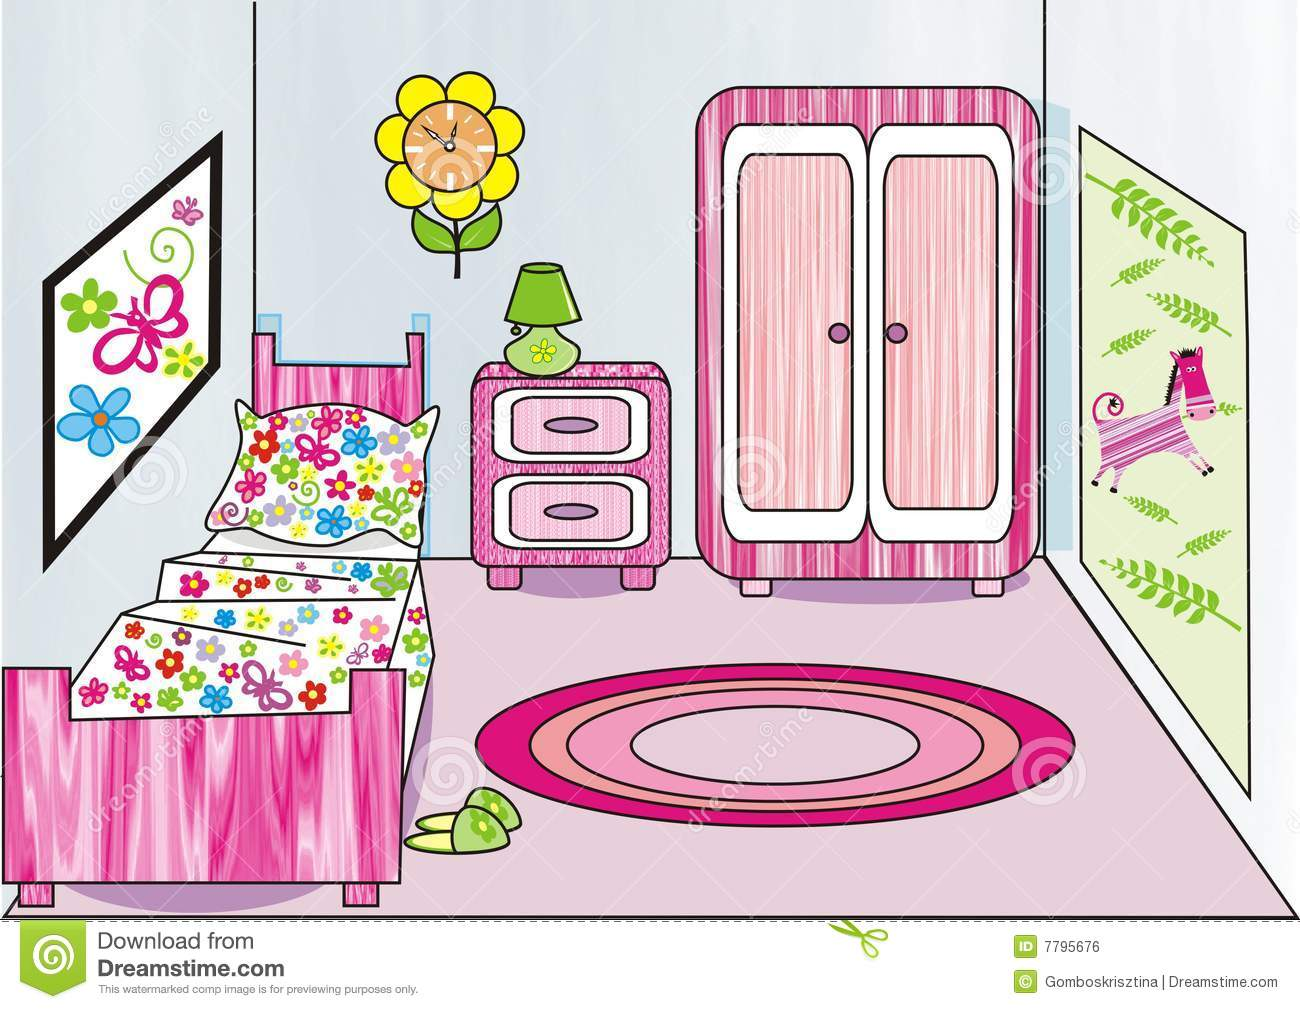 Www Dreamstime Com Royalty Free Stock Image Girl S Room Image7795676